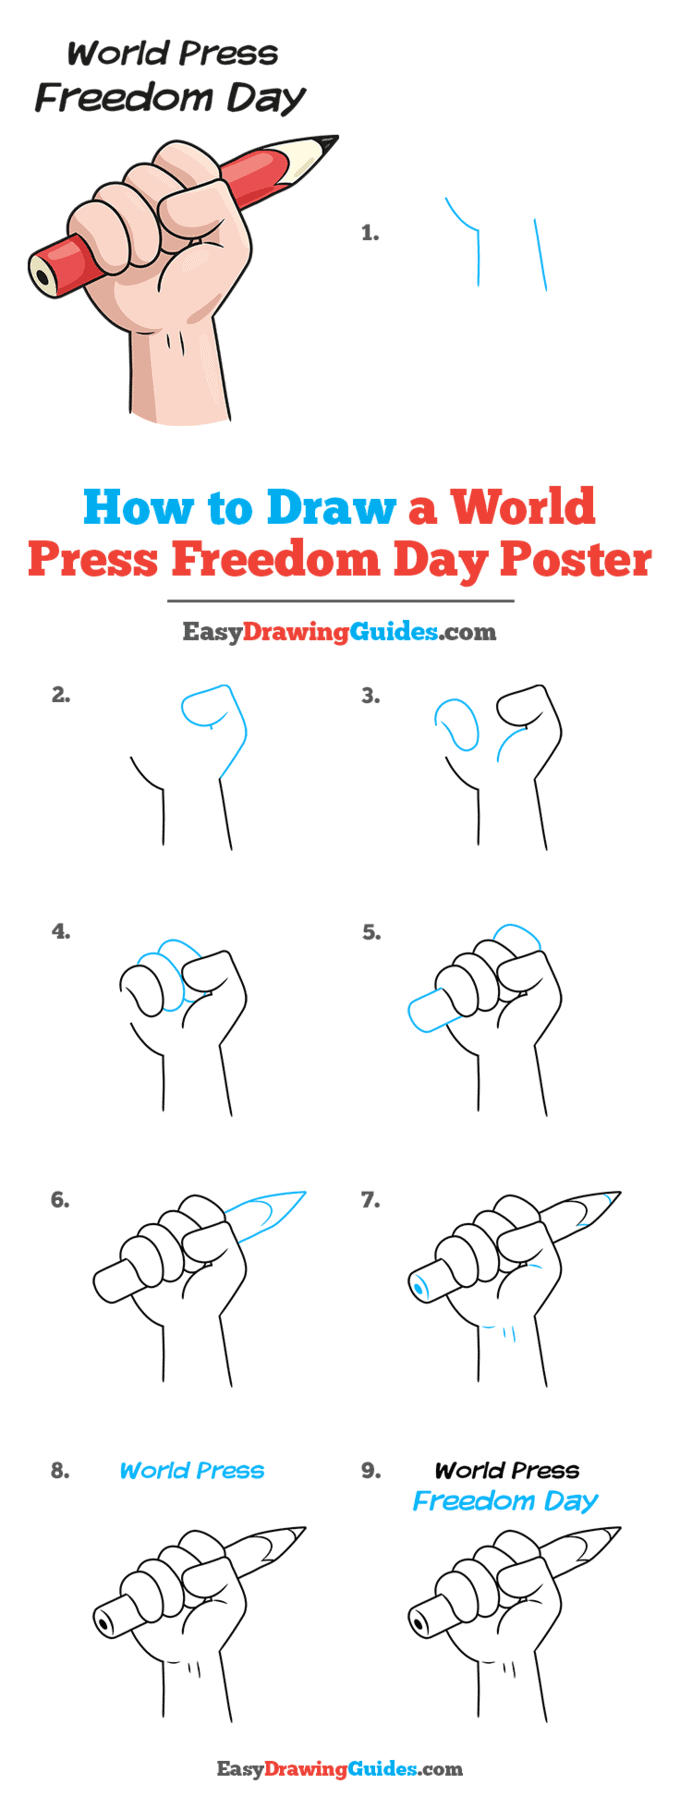 How to Draw a World Press Freedom Day Poster Step by Step Tutorial Image